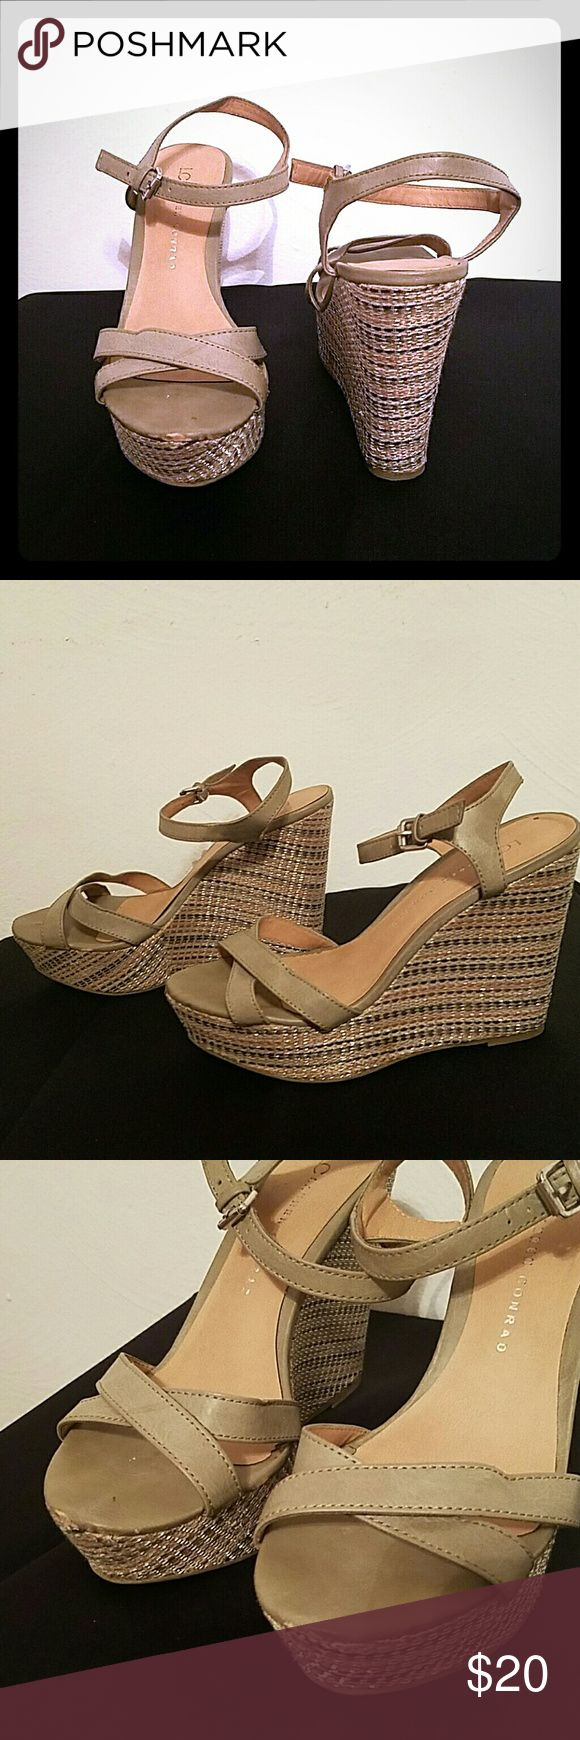 LC Lauren Conrad Wedges LC Lauren Conrad Wedges size 9. A few scuffs so letting them go for cheap. LC Lauren Conrad Shoes Wedges